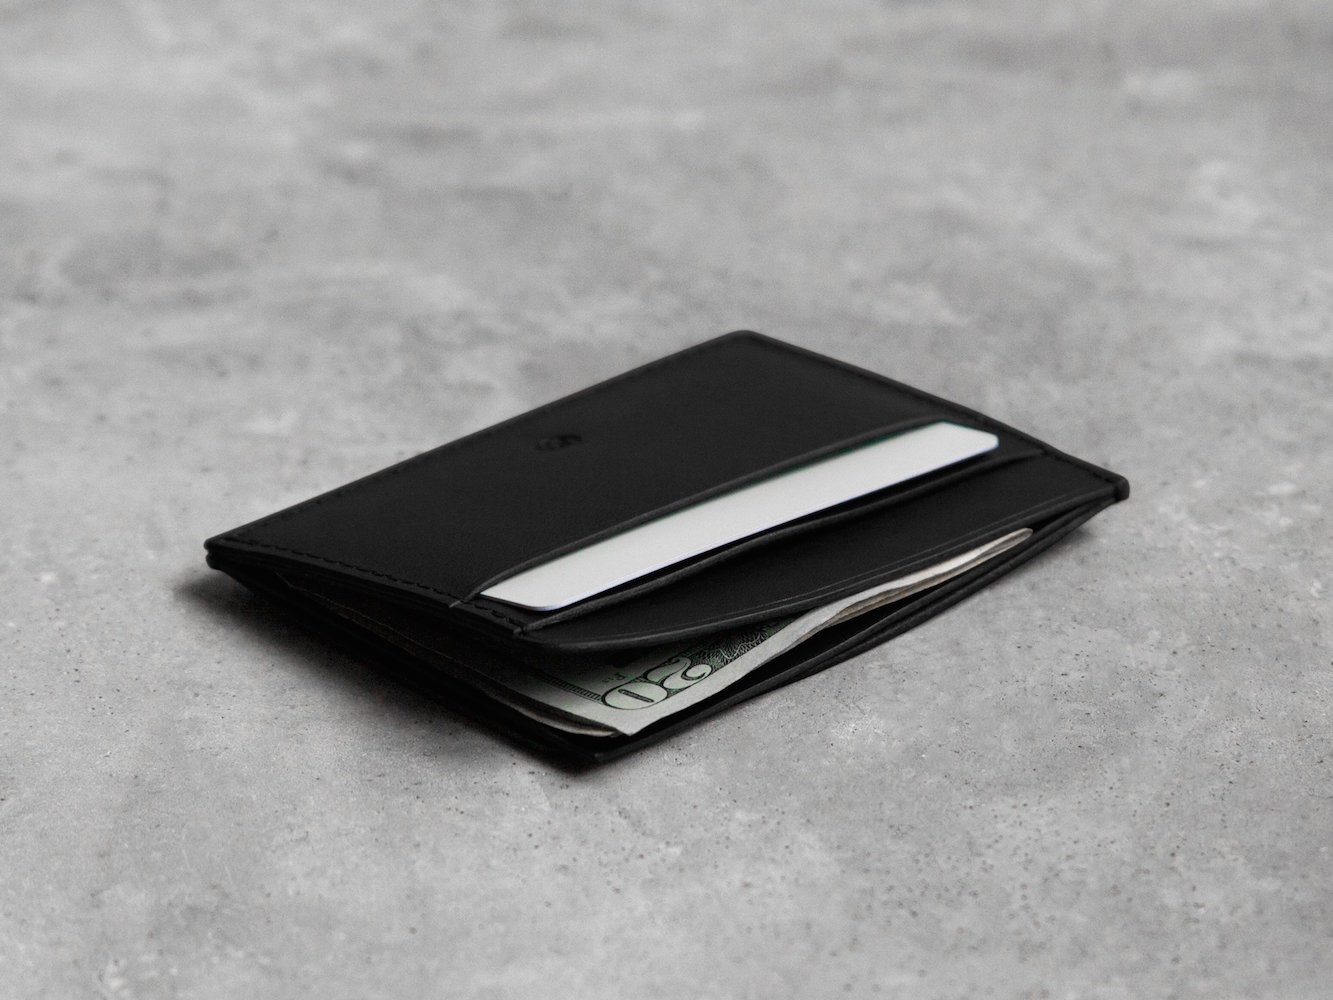 The+Nolan+Card+Holder+In+Black+%26%238211%3B+Handmade+And+Waxed+To+Extend+Durability